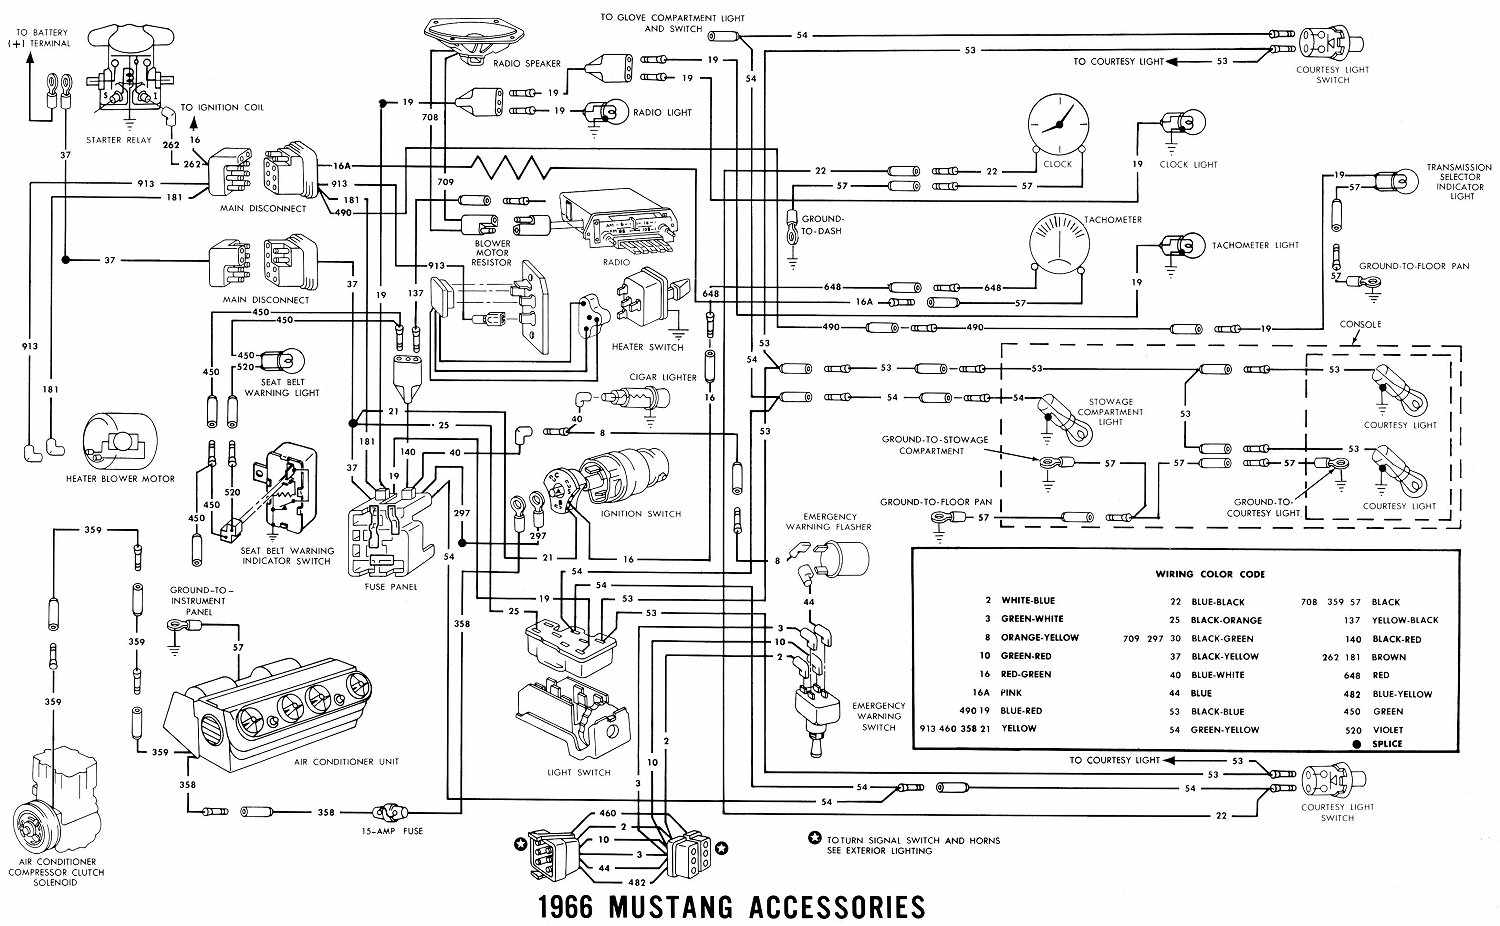 2011 Mustang Wiring Diagram Diagrams Box Headlight 98 S10 Forum Detailed Schematics 2012 Trunk